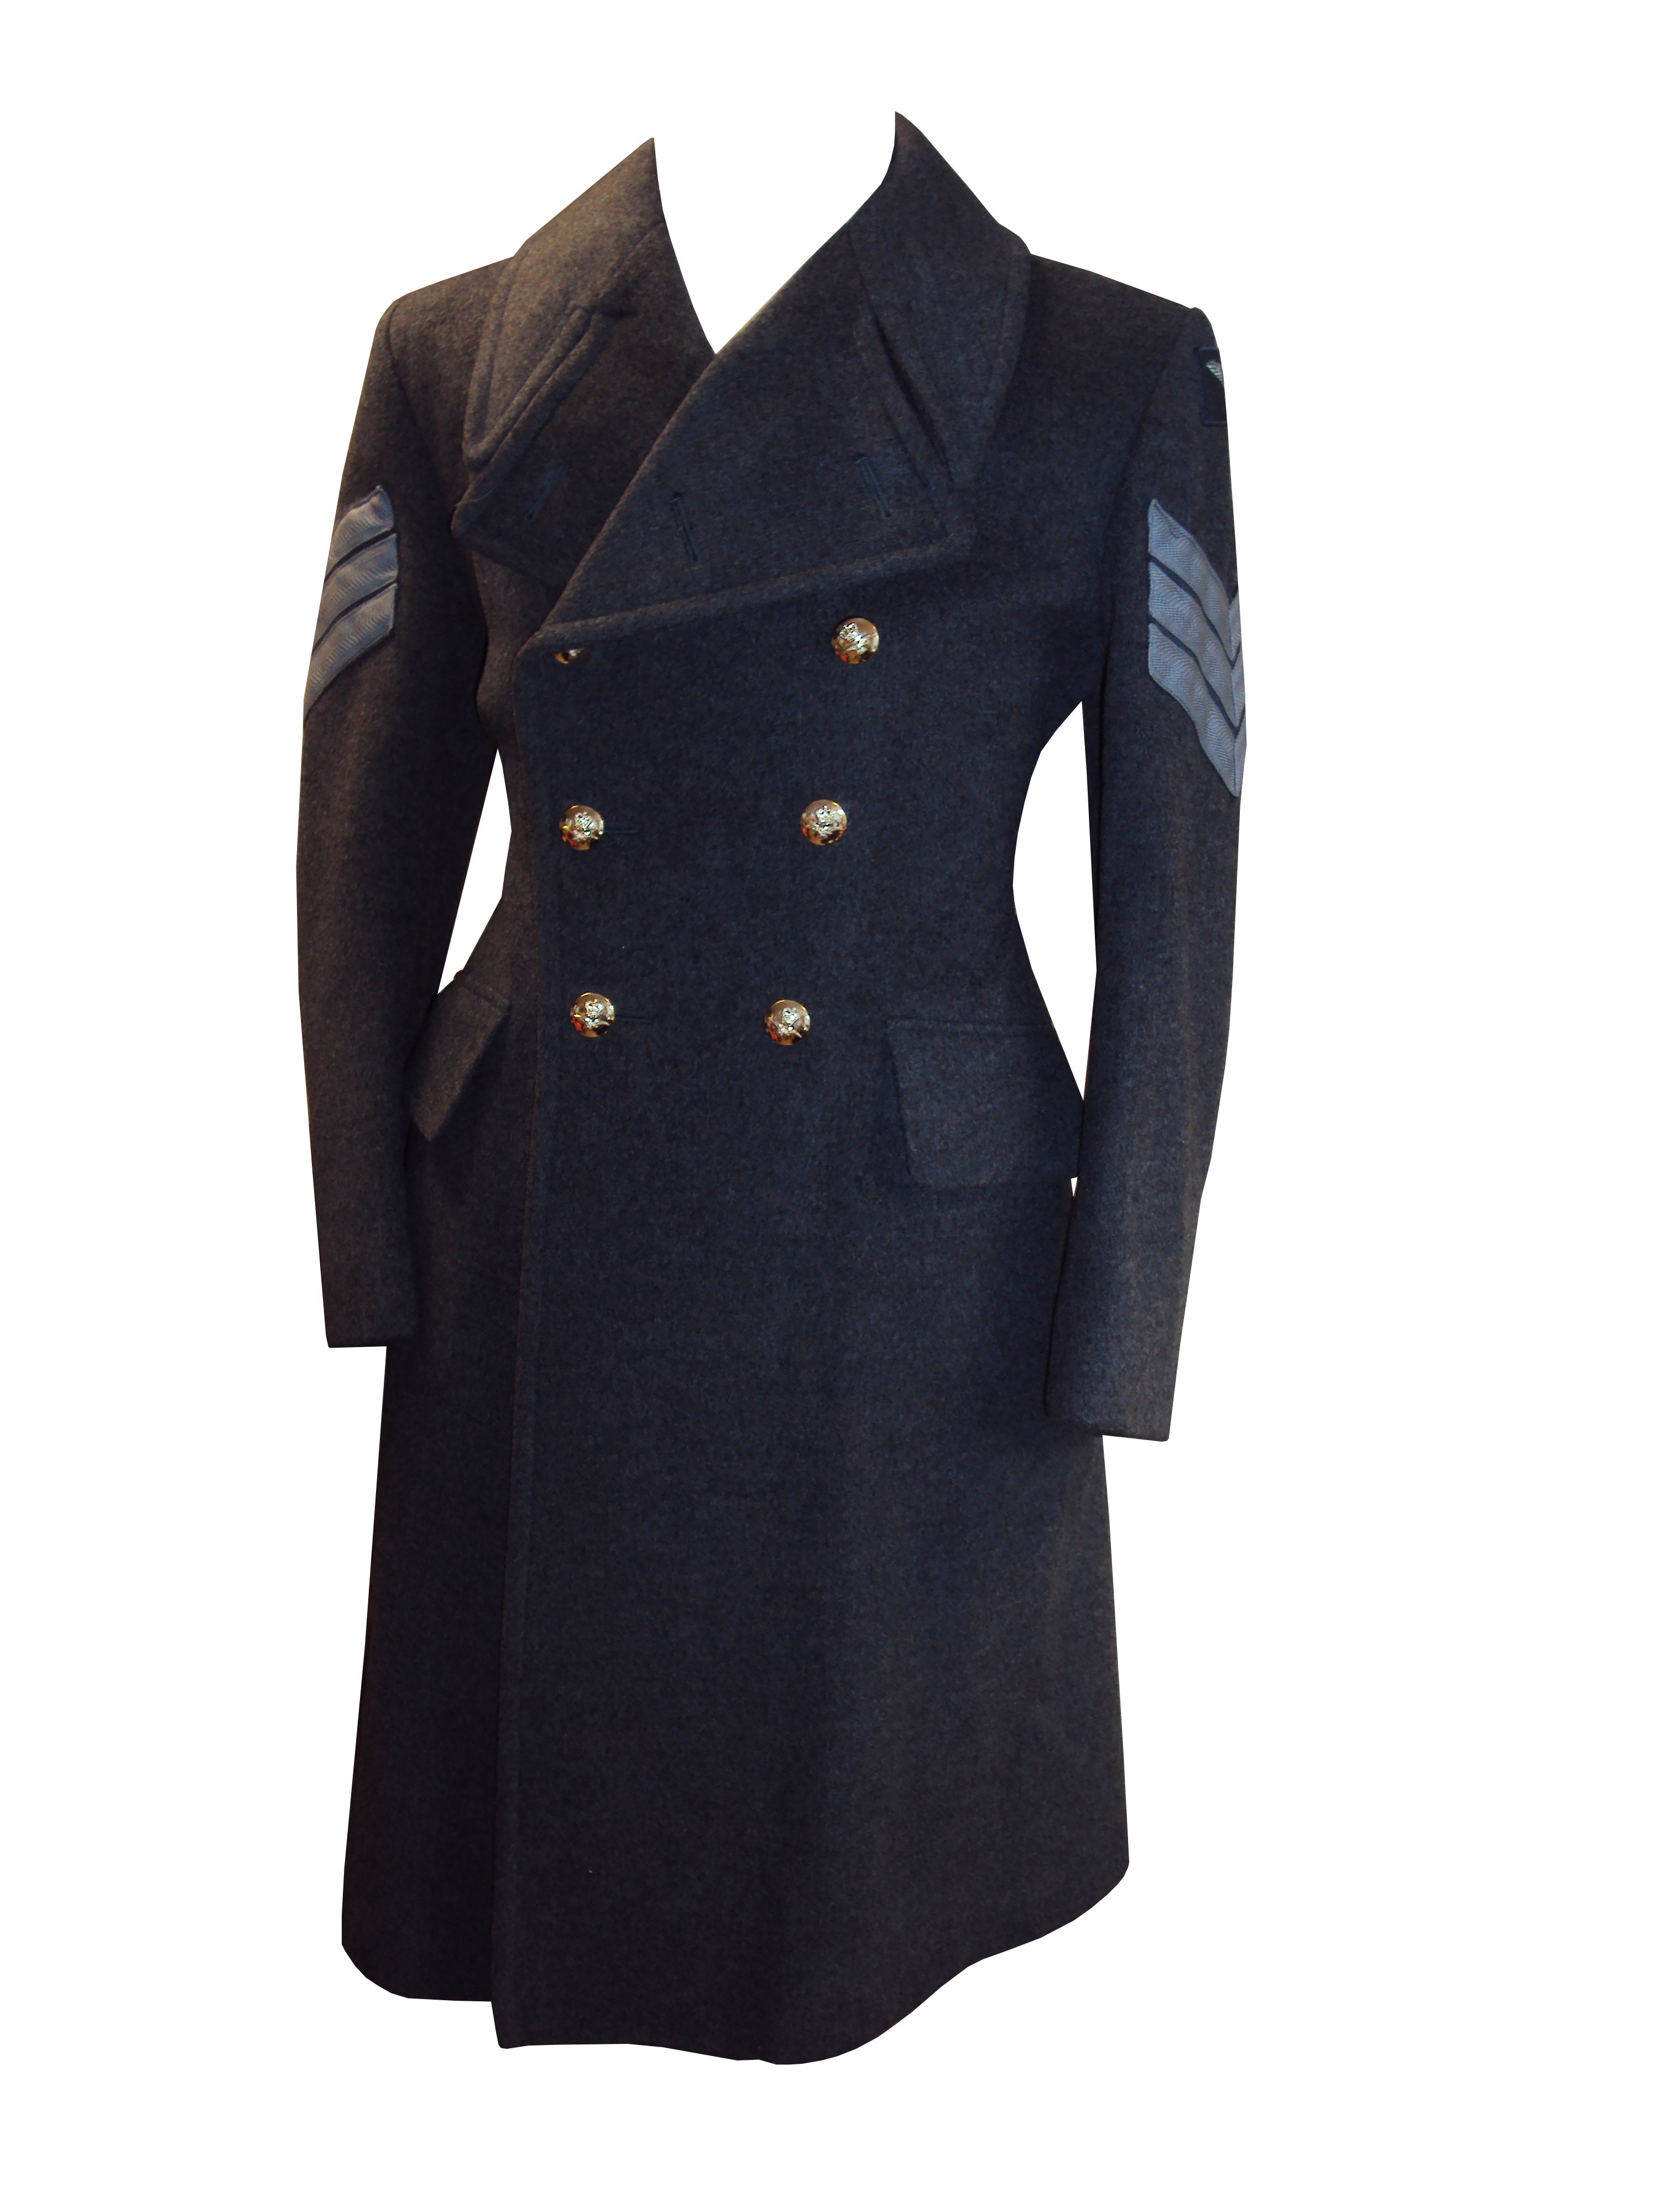 """Lot 33 - Royal Air Force Greatcoat - 40"""" Chest - Grade 1 Condition"""